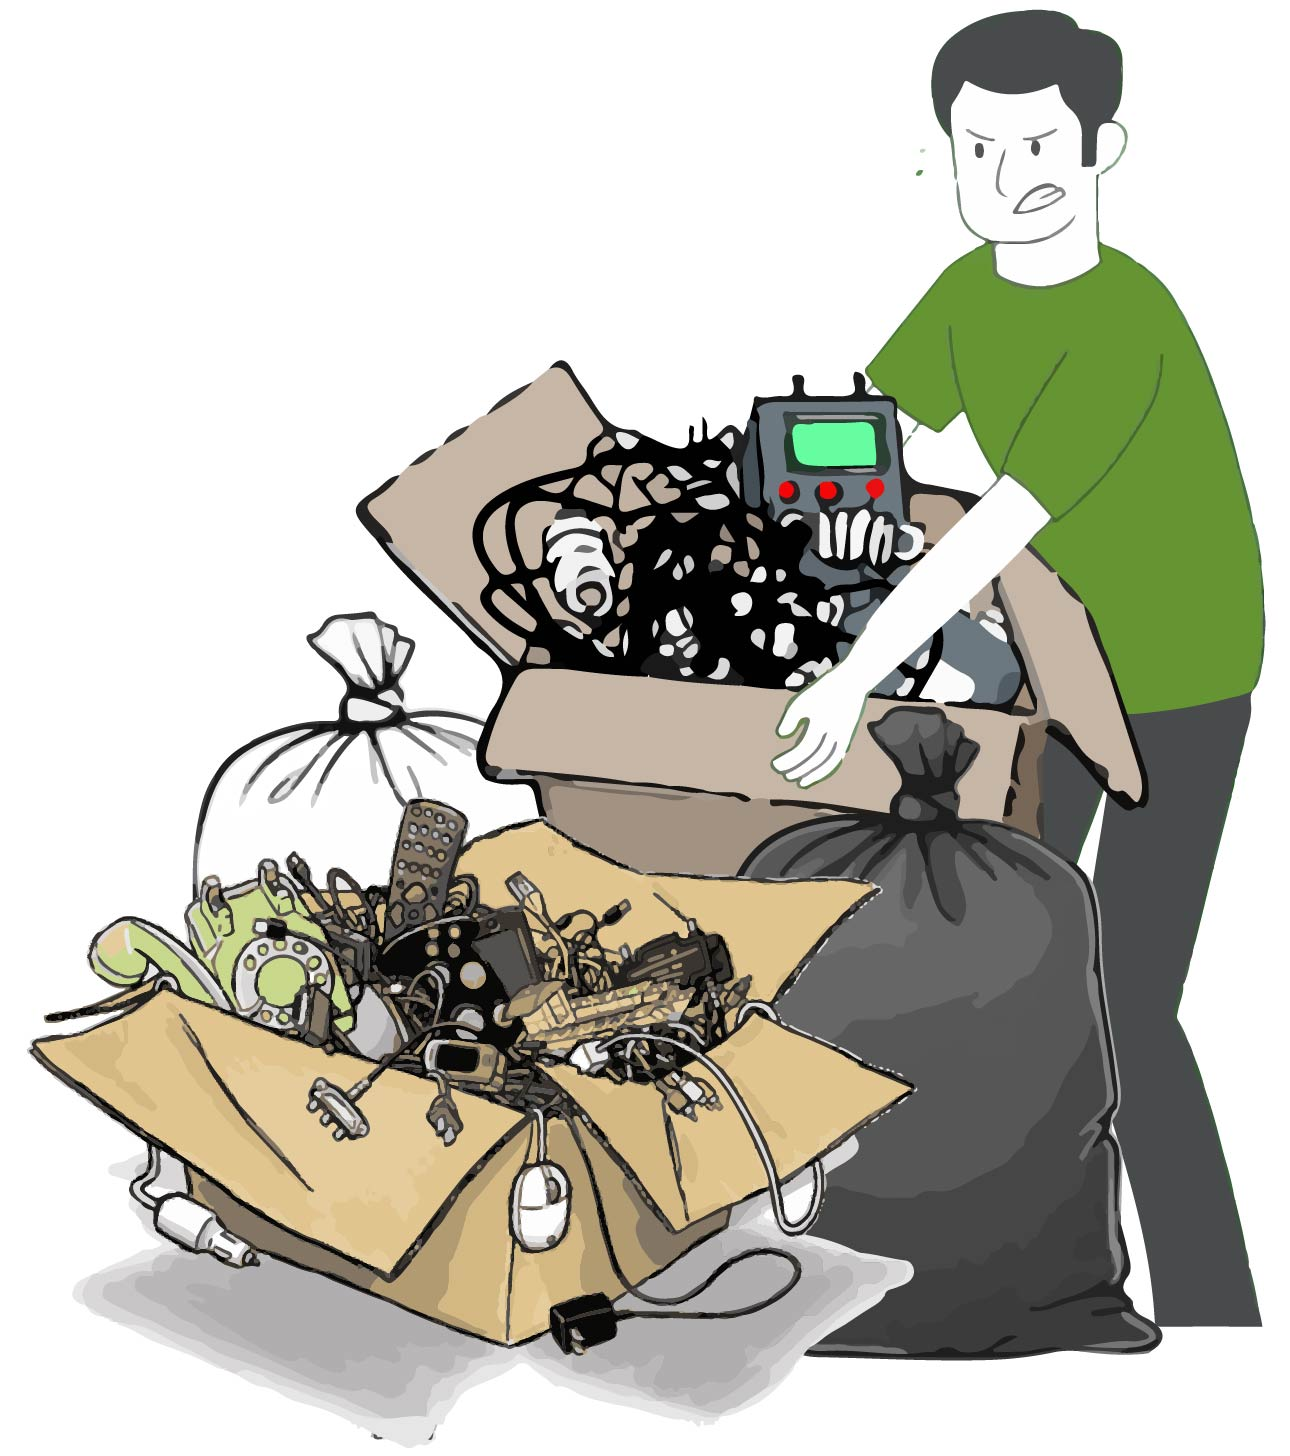 Affordable Junk Removal Services in Mission, KS